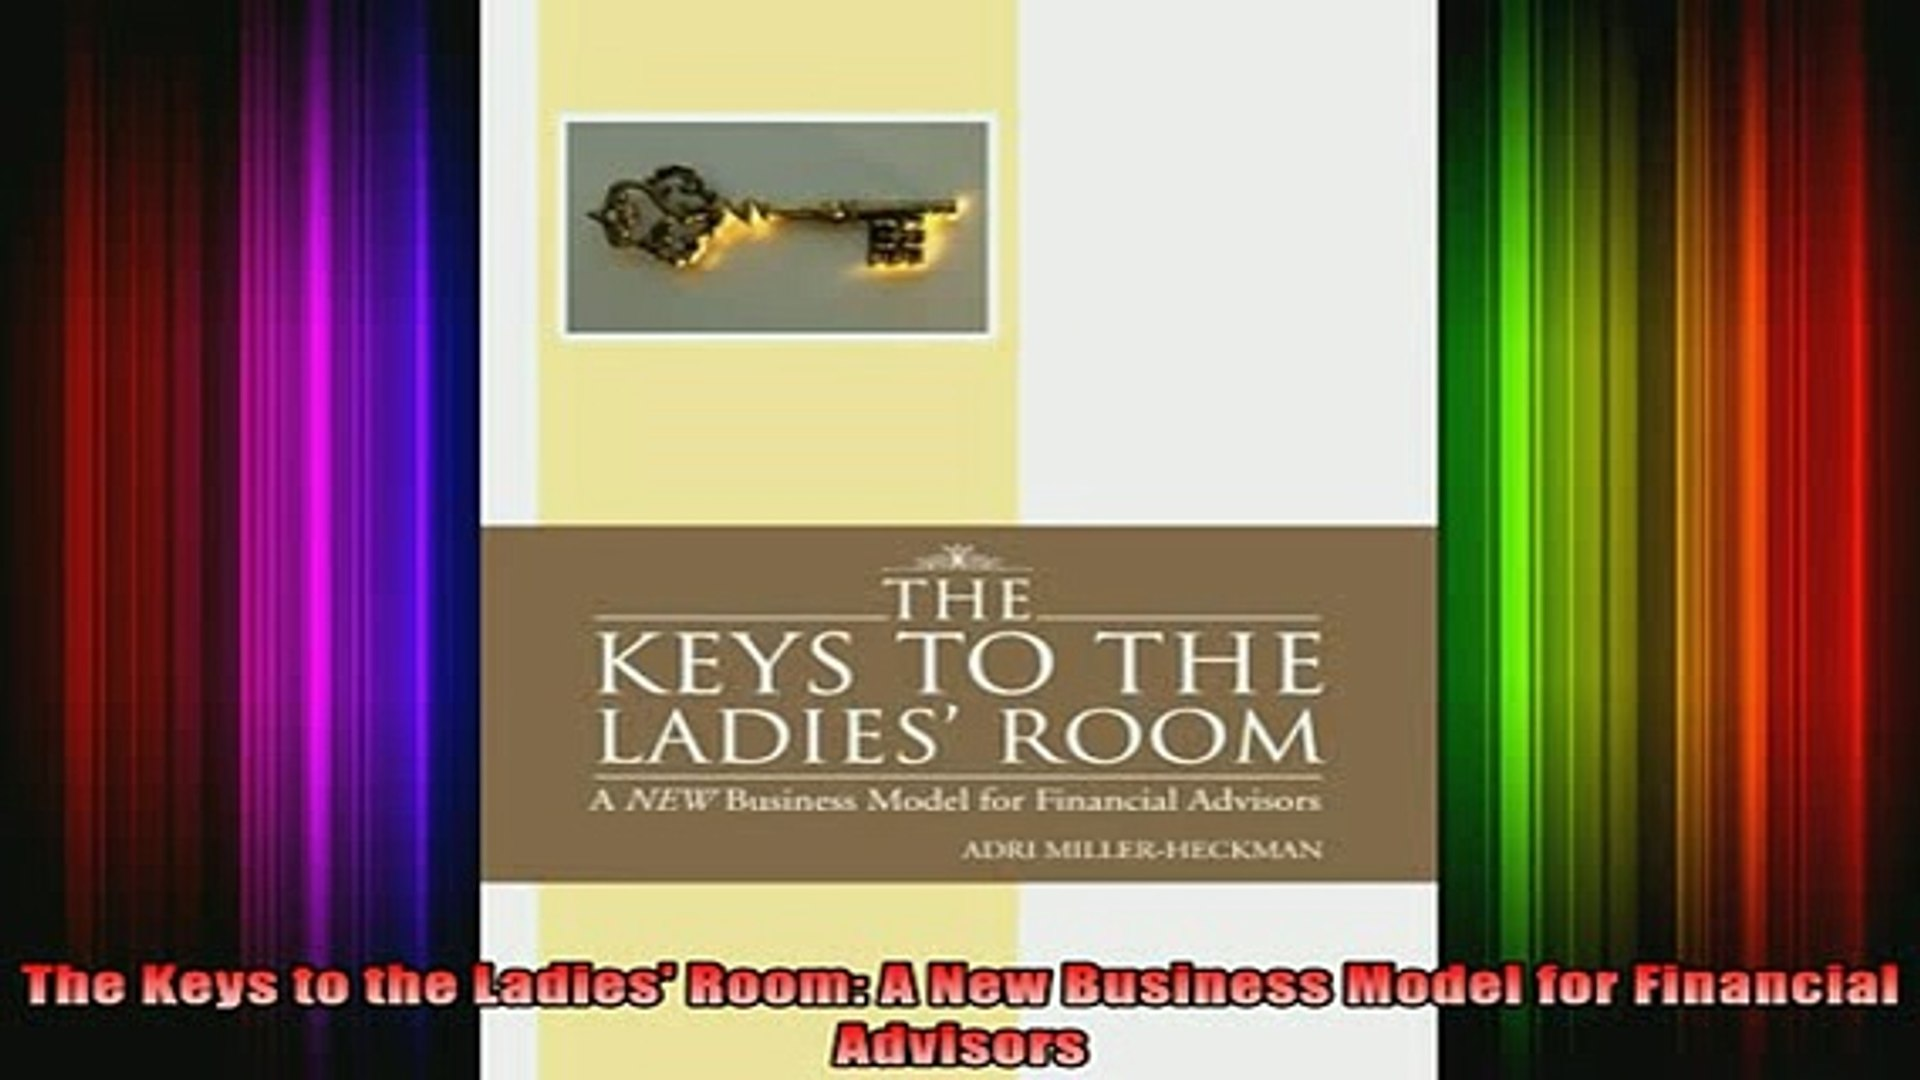 The Keys to the Ladies Room : A NEW Business Model for Financial Advisors